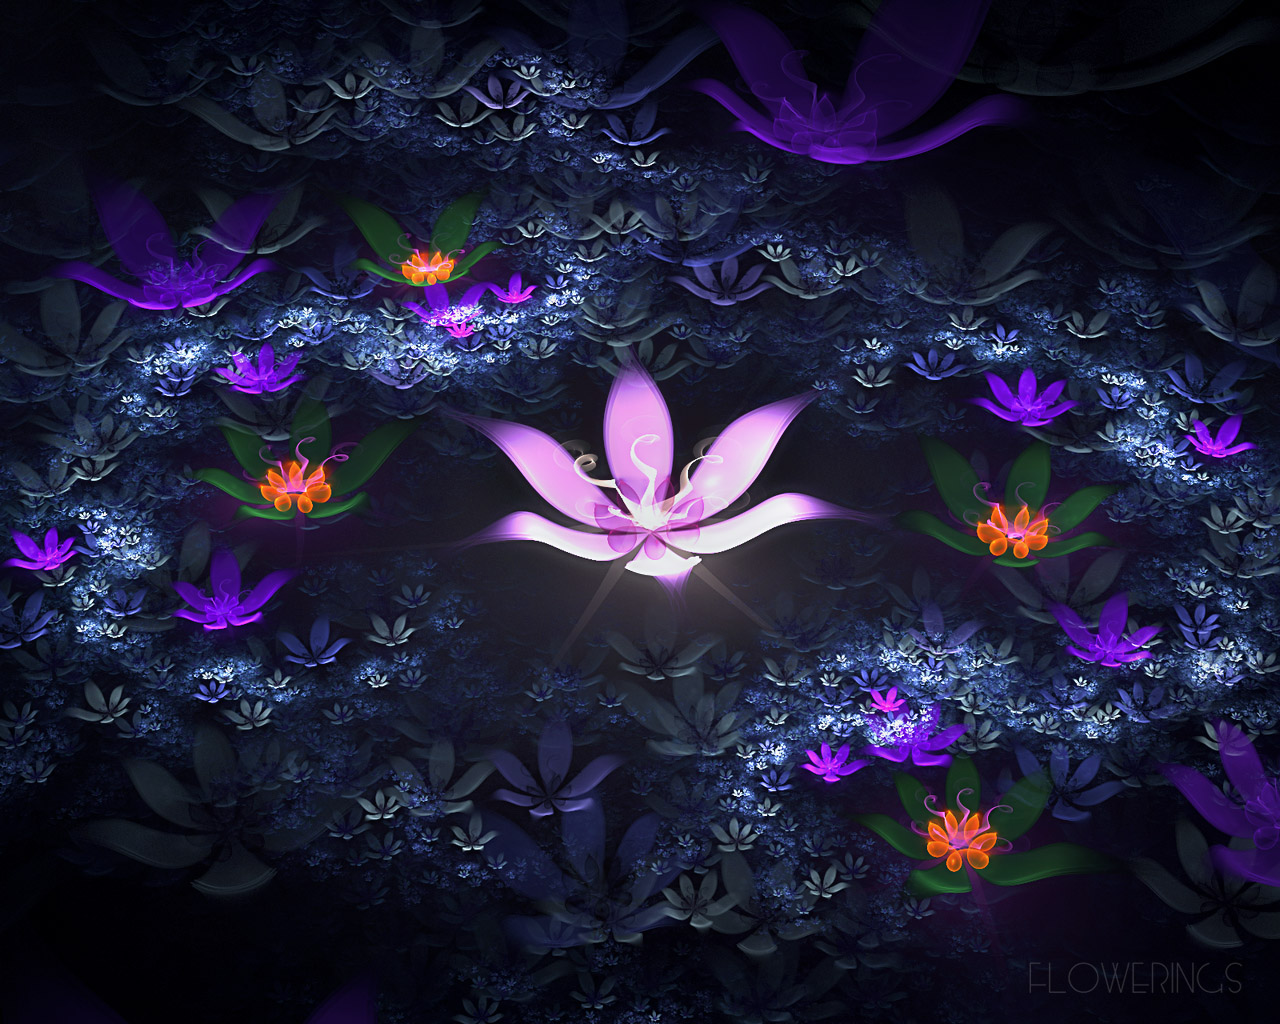 D fantasy abstract flowers 2922